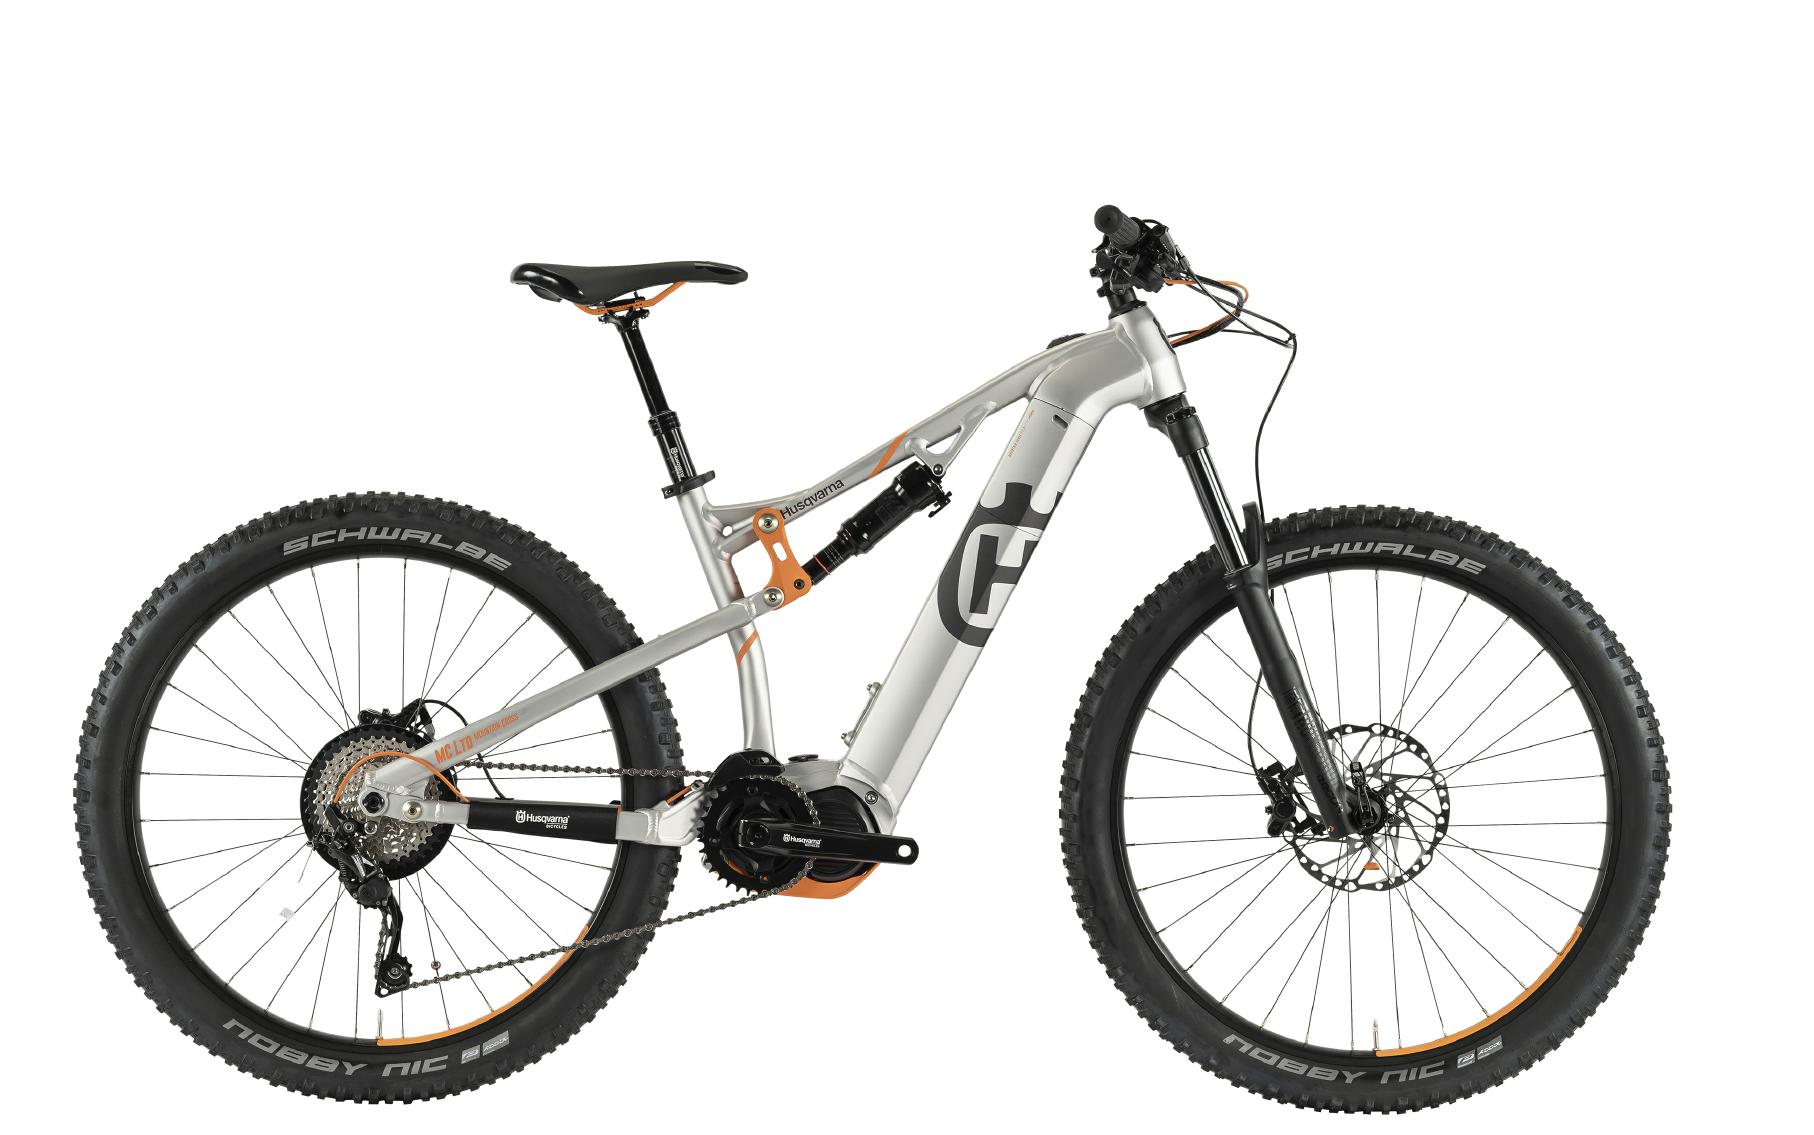 Husqvarna 2019 Mountain Cross Anniversary Model MC LTD - silver